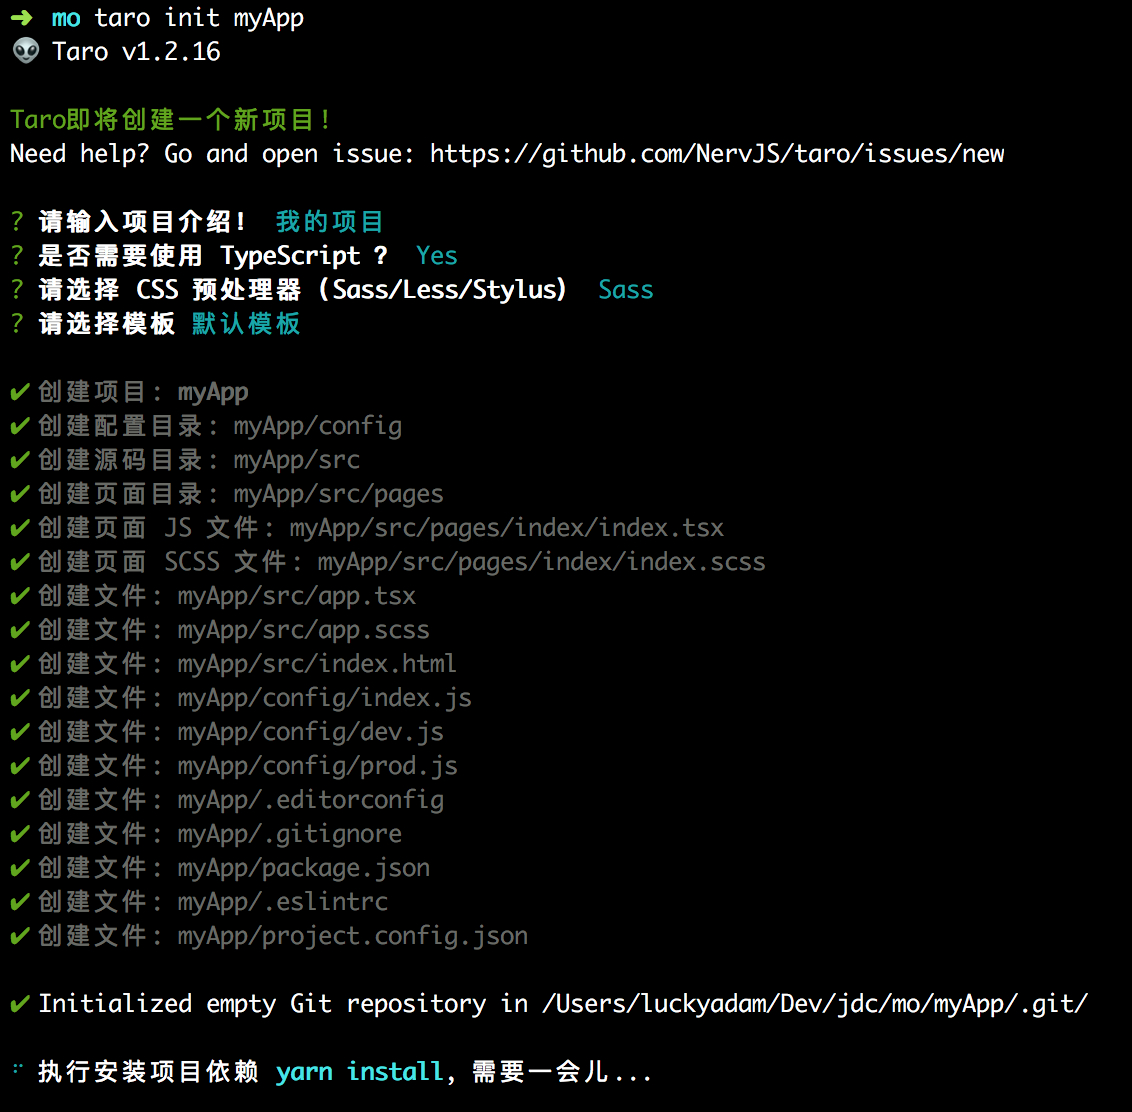 taro init myApp command screenshot